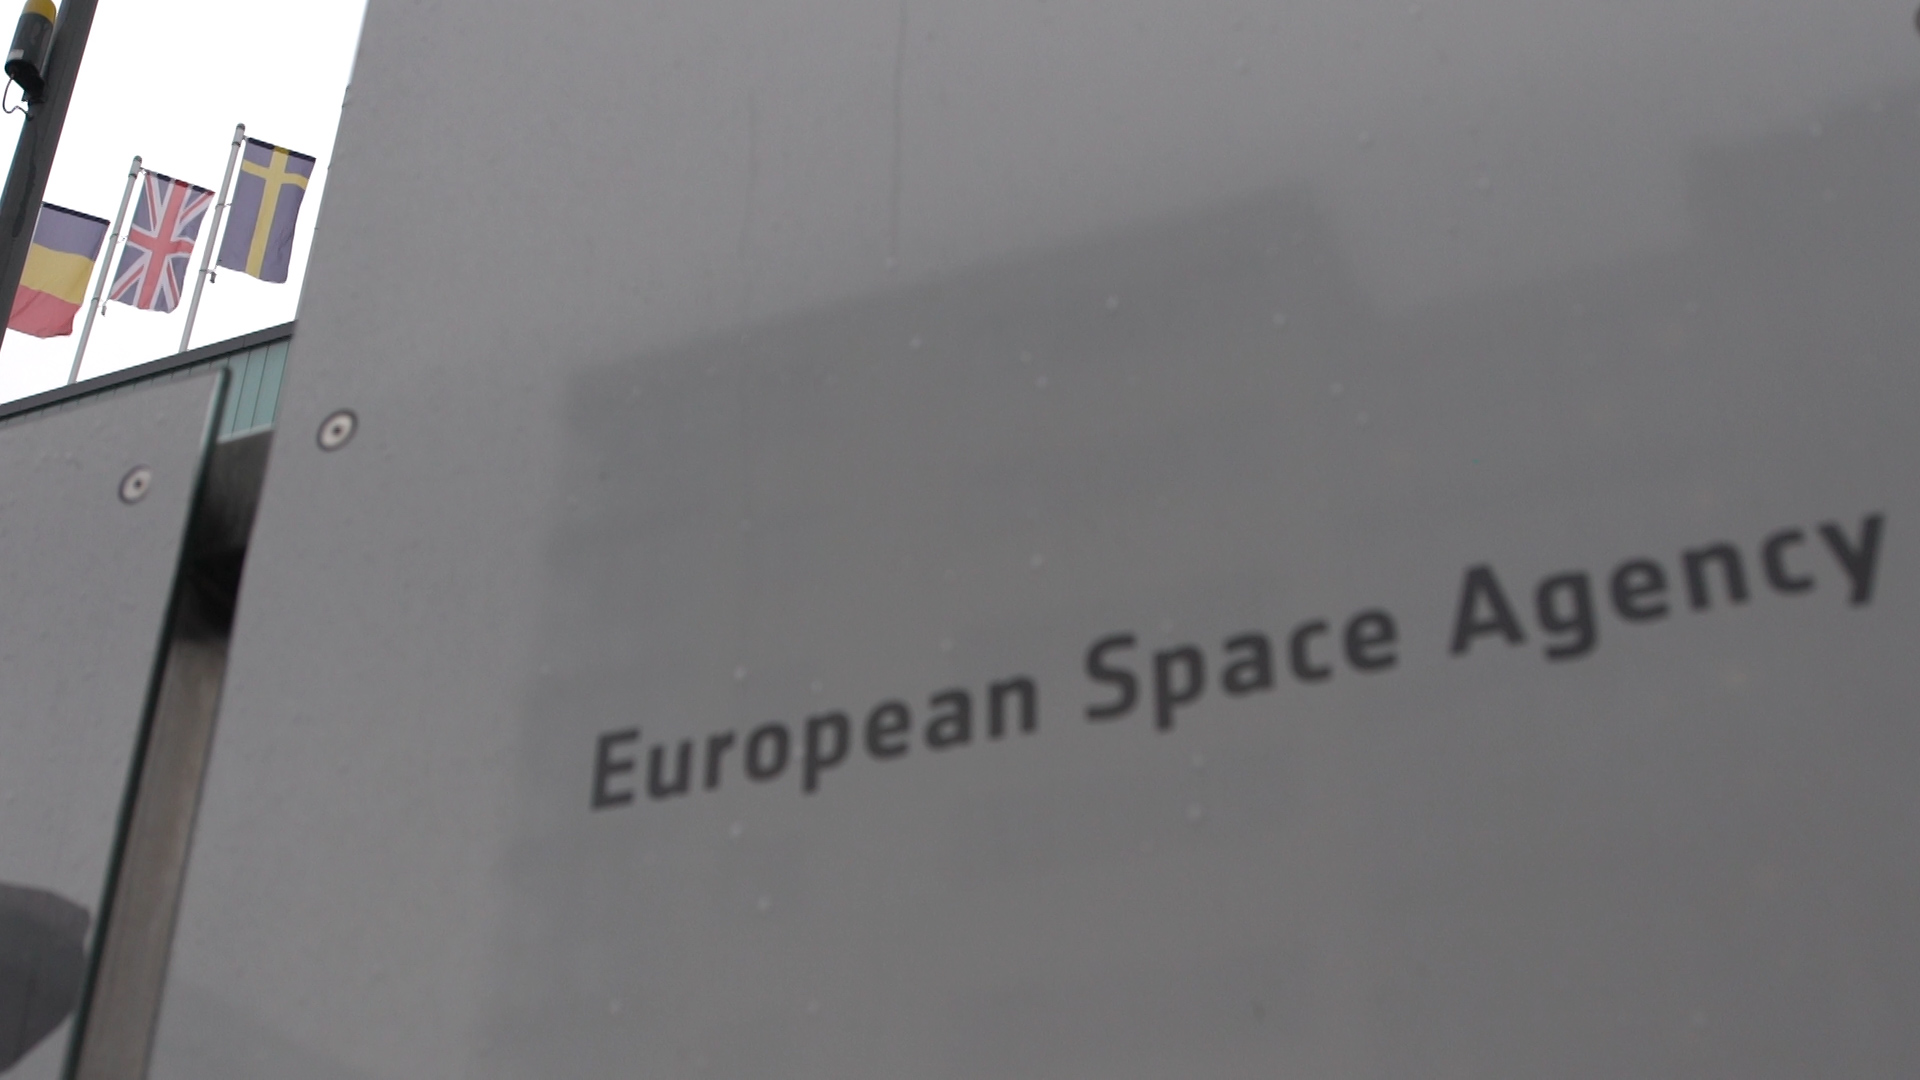 - d52c0885c10445b3b3bce1bae1fadcd5 - Post-Brexit UK stays with European Space Agency, but projects struggle